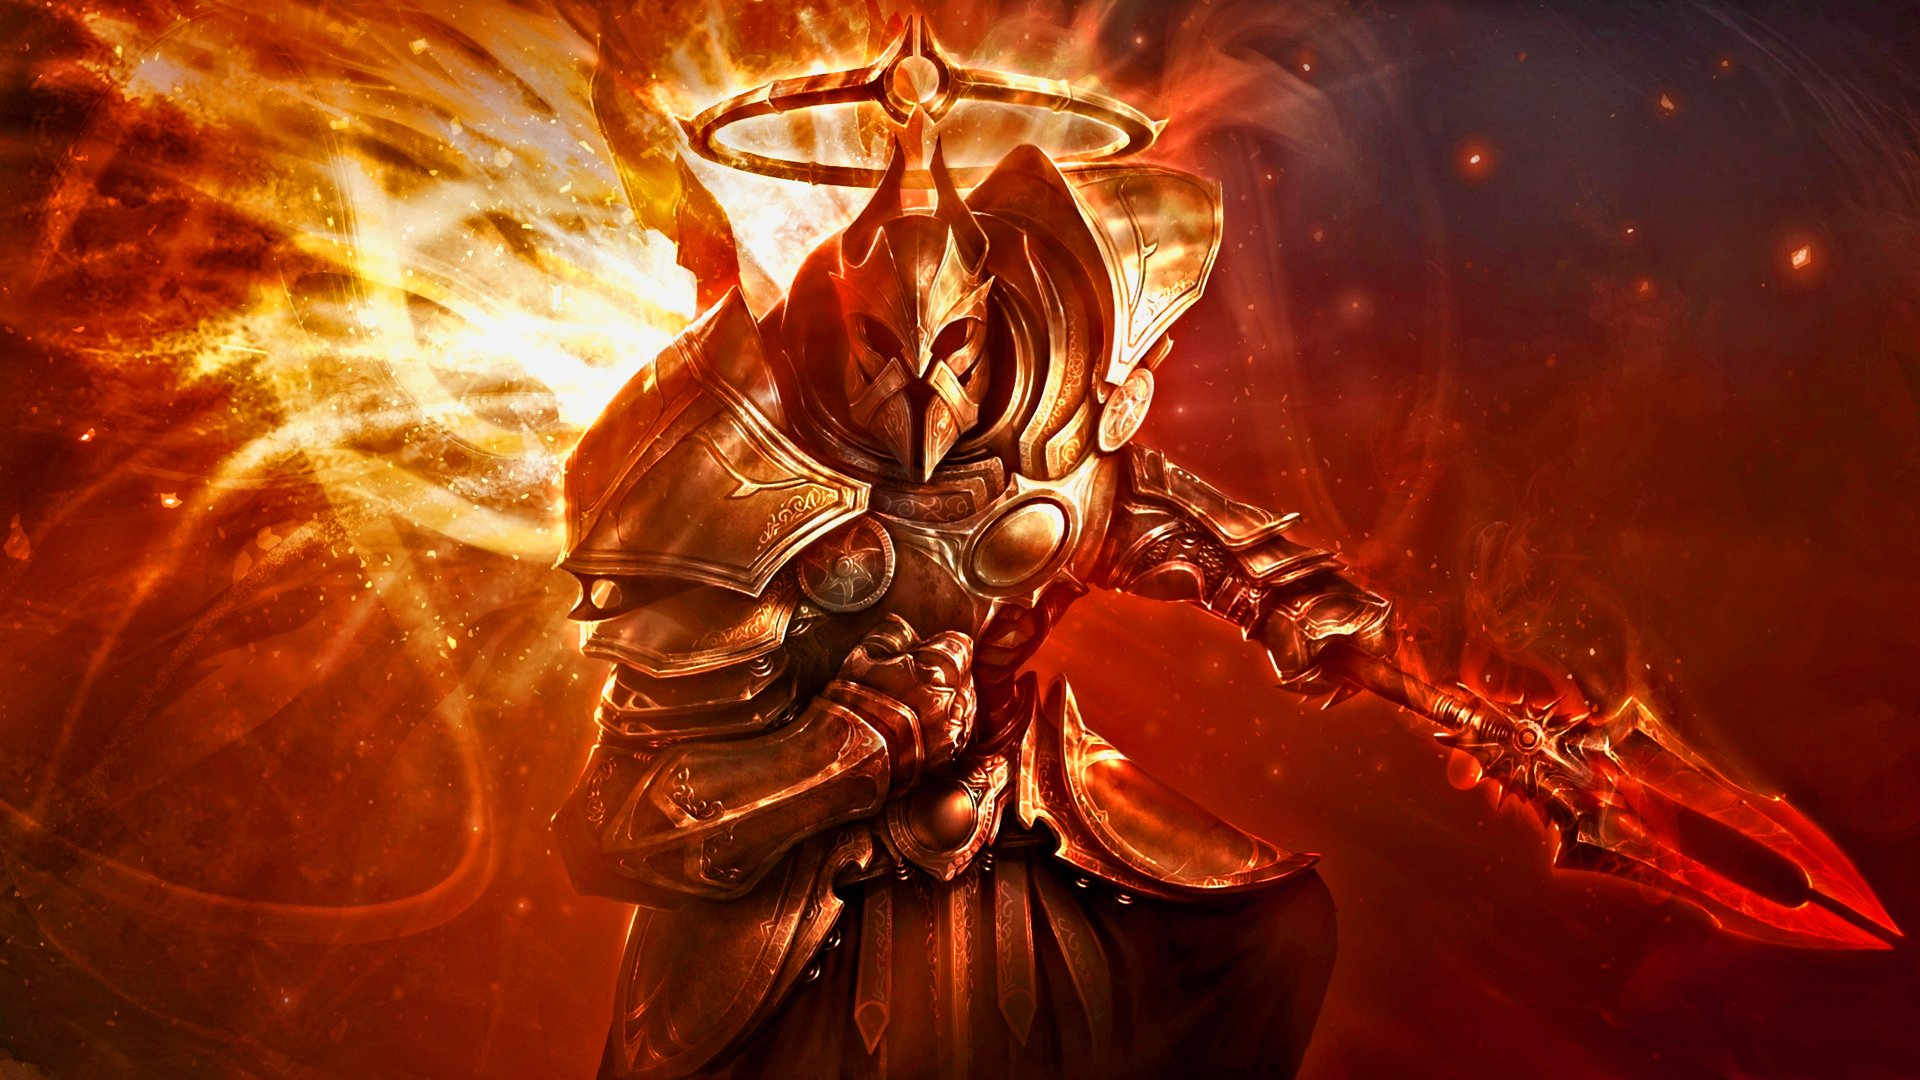 Archangel Imperius Full Hd Wallpaper And Background Image